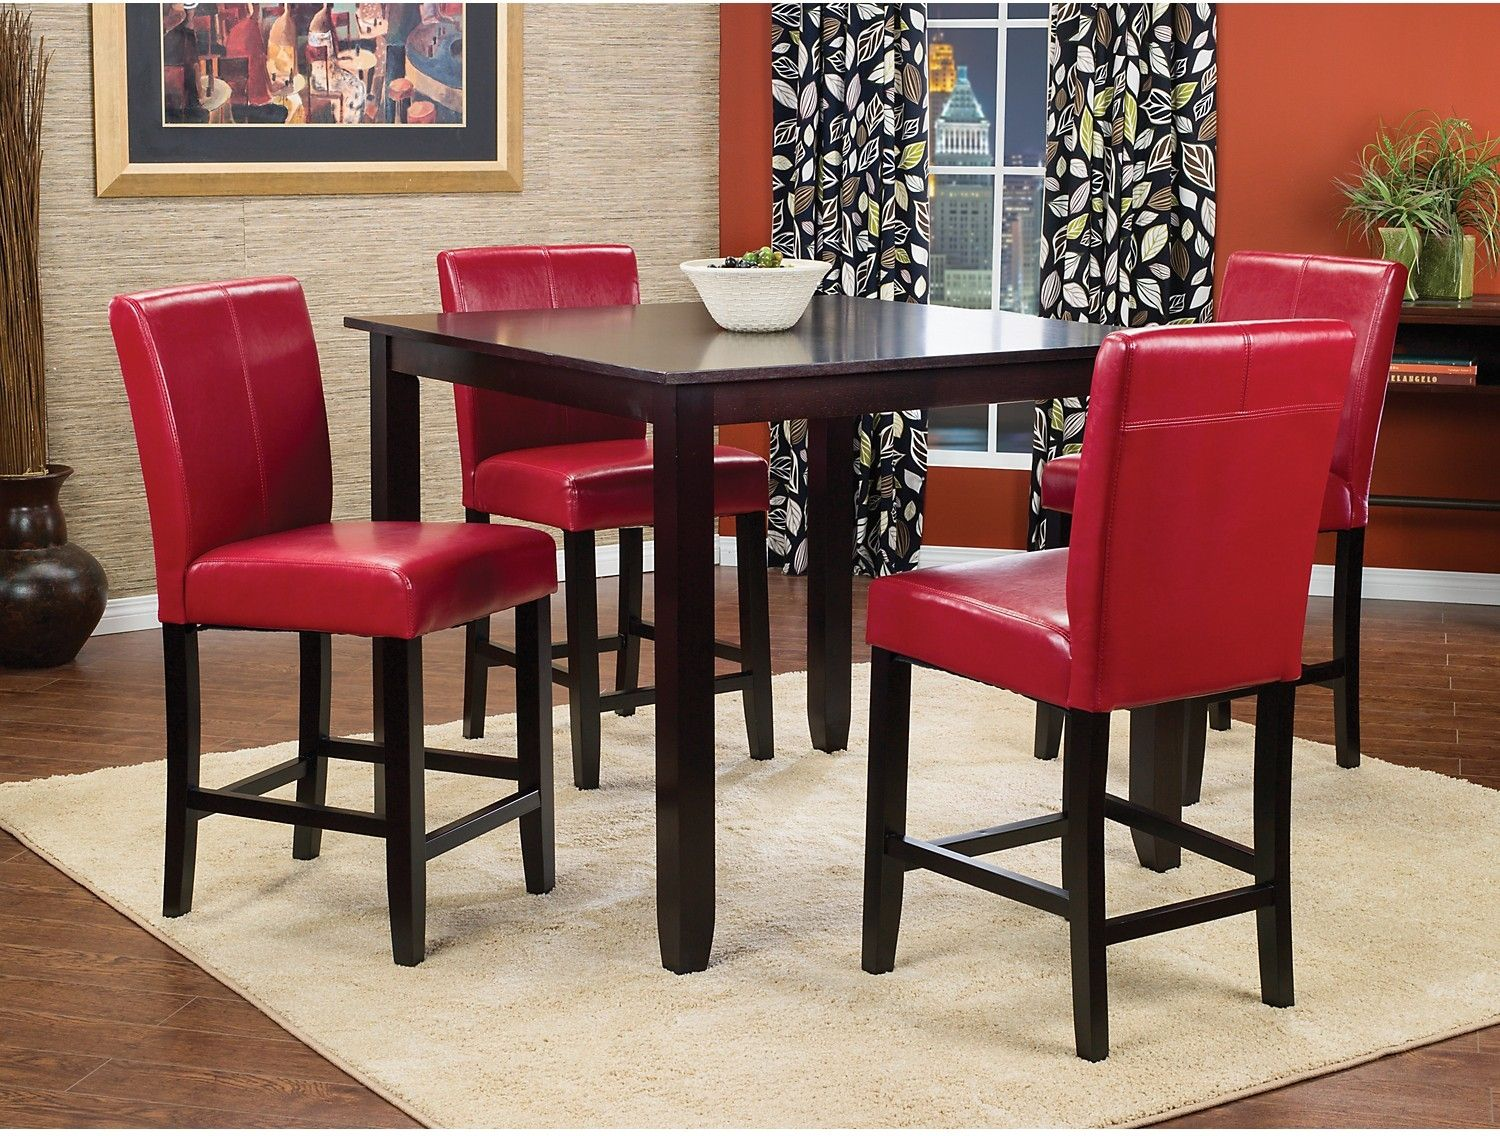 Red Counter Height Dining Chairs Yoga Ball As Desk Chair Nicole 5 Piece Package With